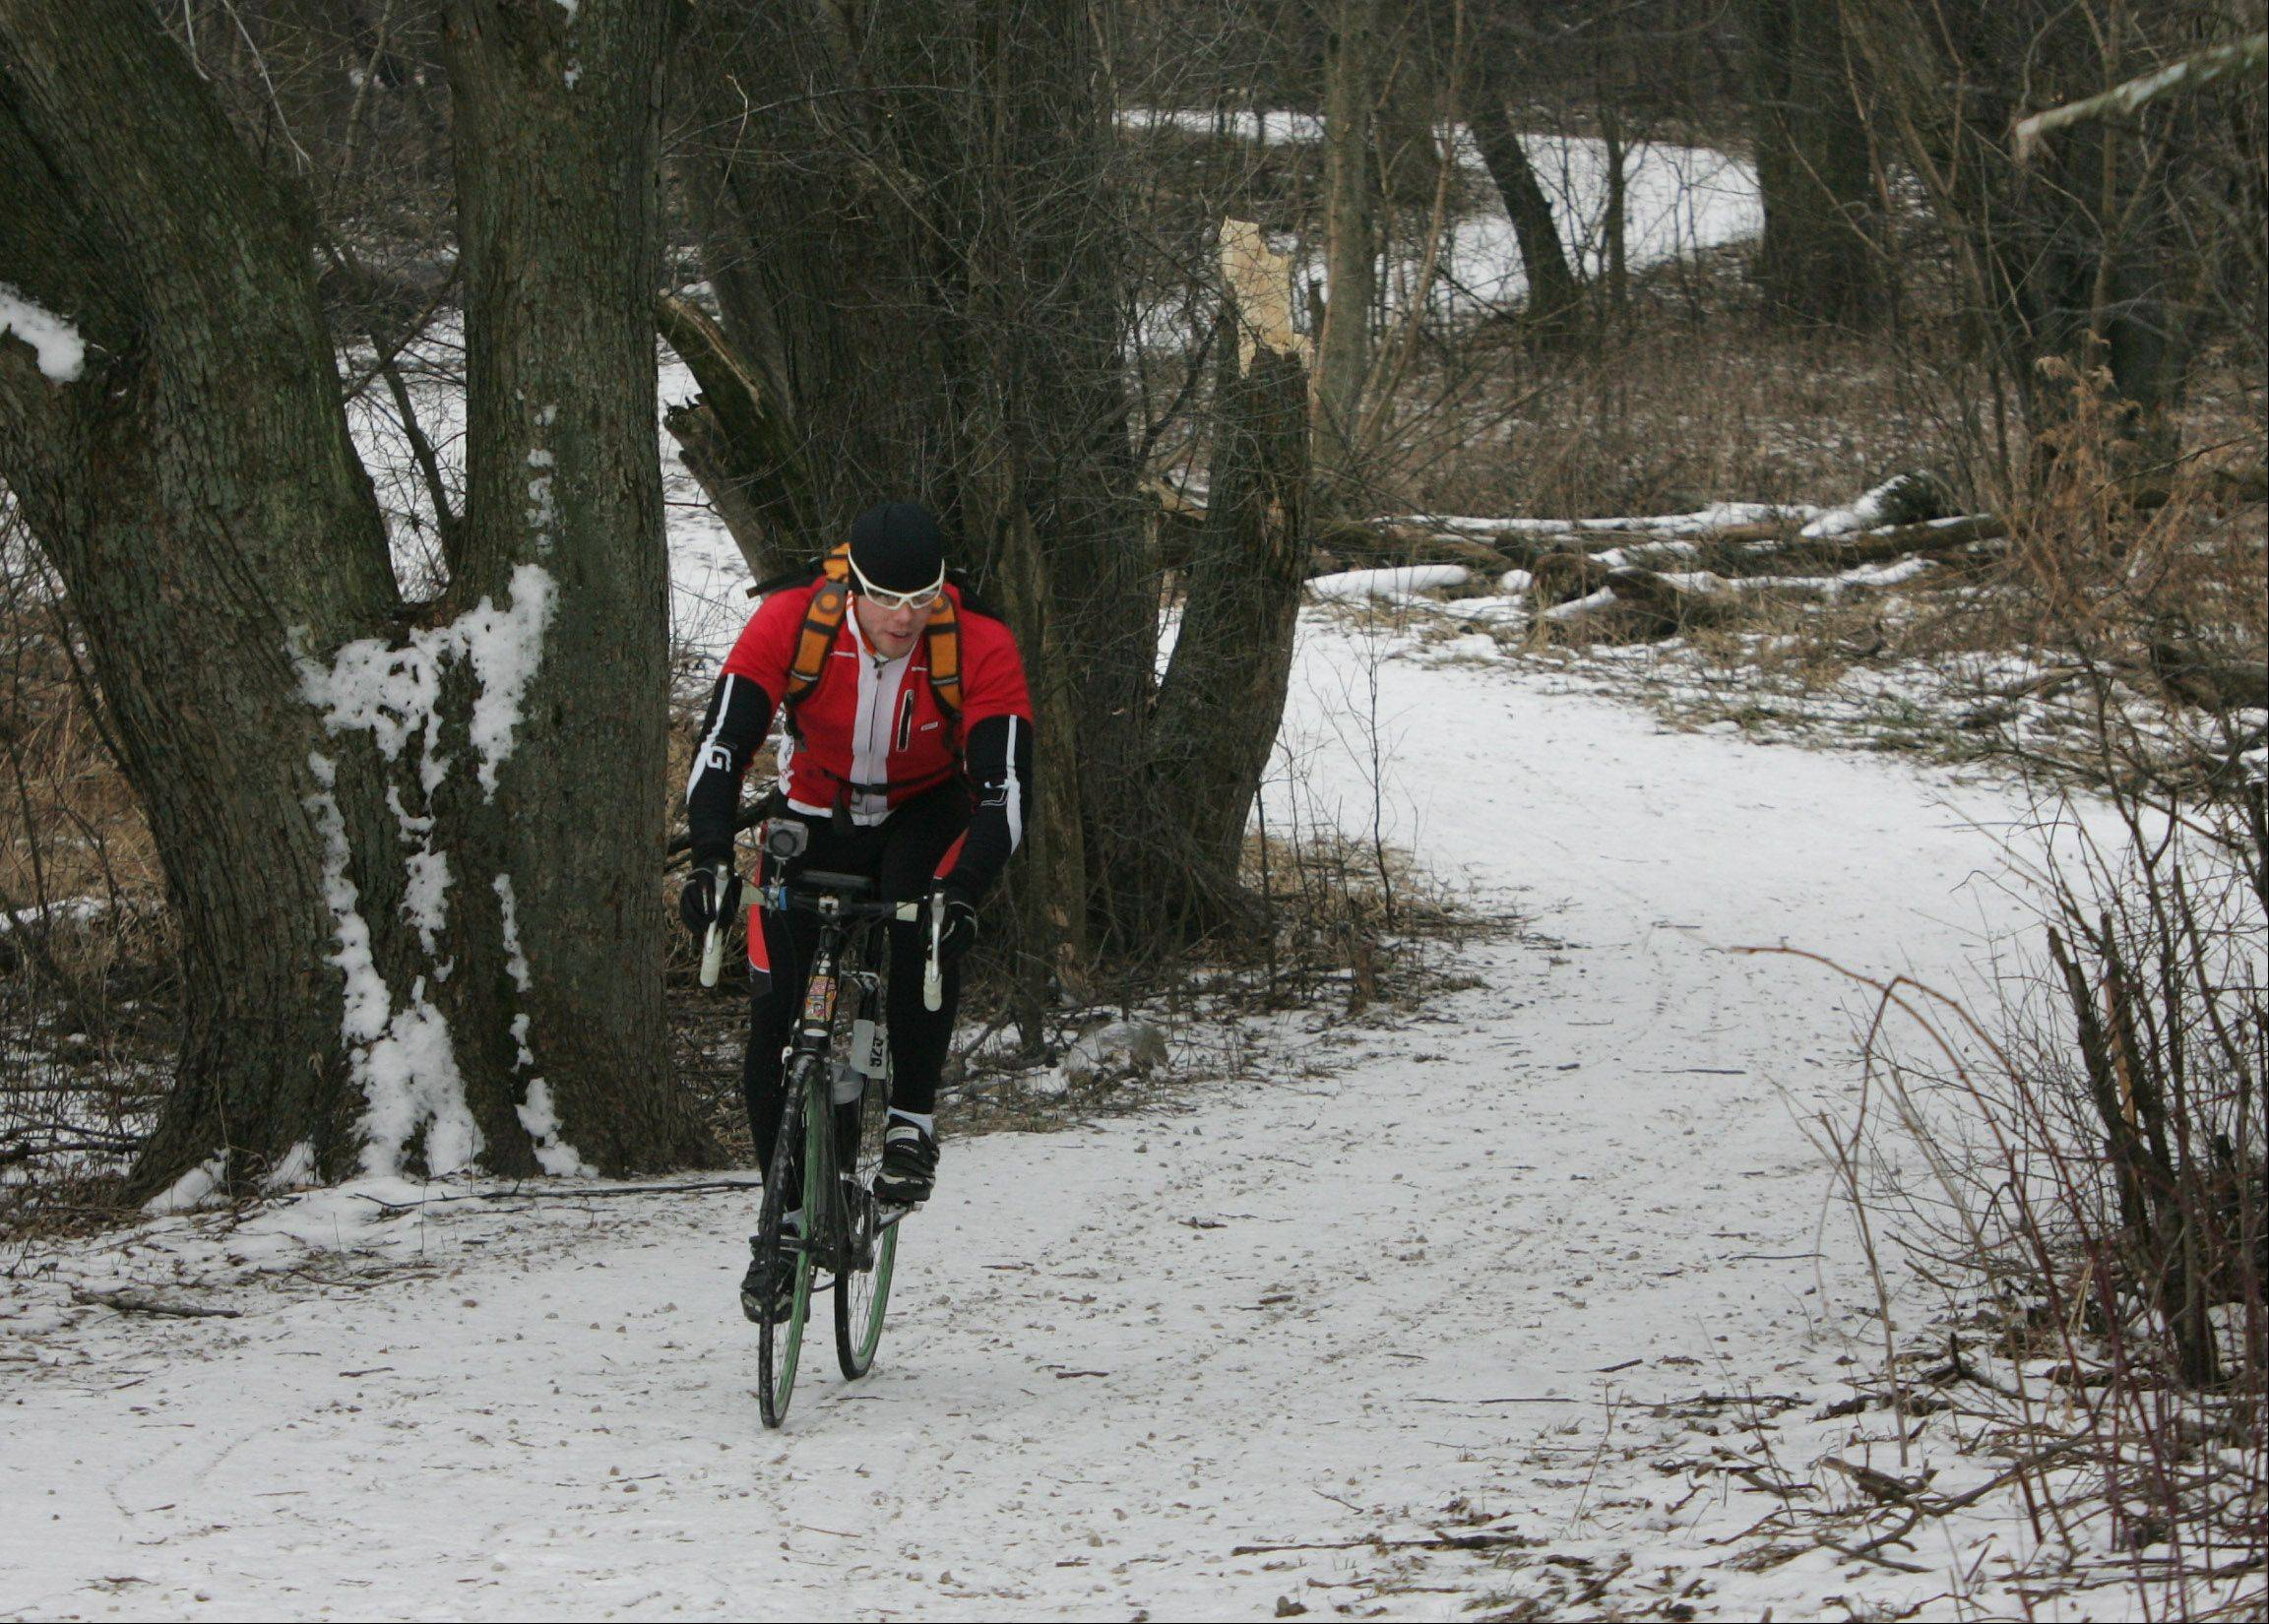 Ryan Faber, of Palatine, goes off-road cycling at Deer Grove East Forest Preserve in Palatine.